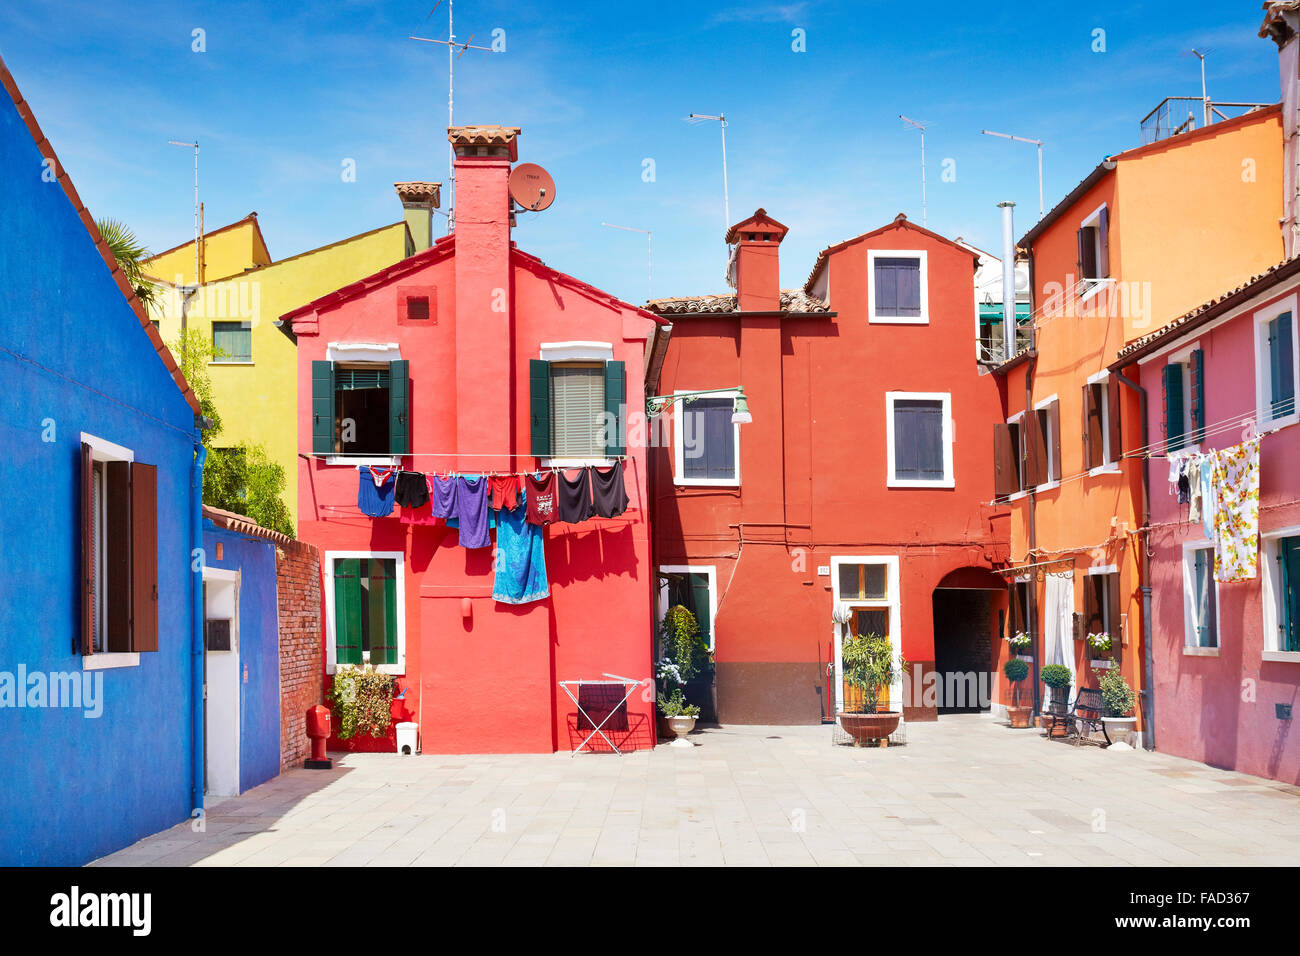 Characteristic colourful houses in village of Burano near Venice in Italy (Burano Lagoon Island), UNESCO - Stock Image